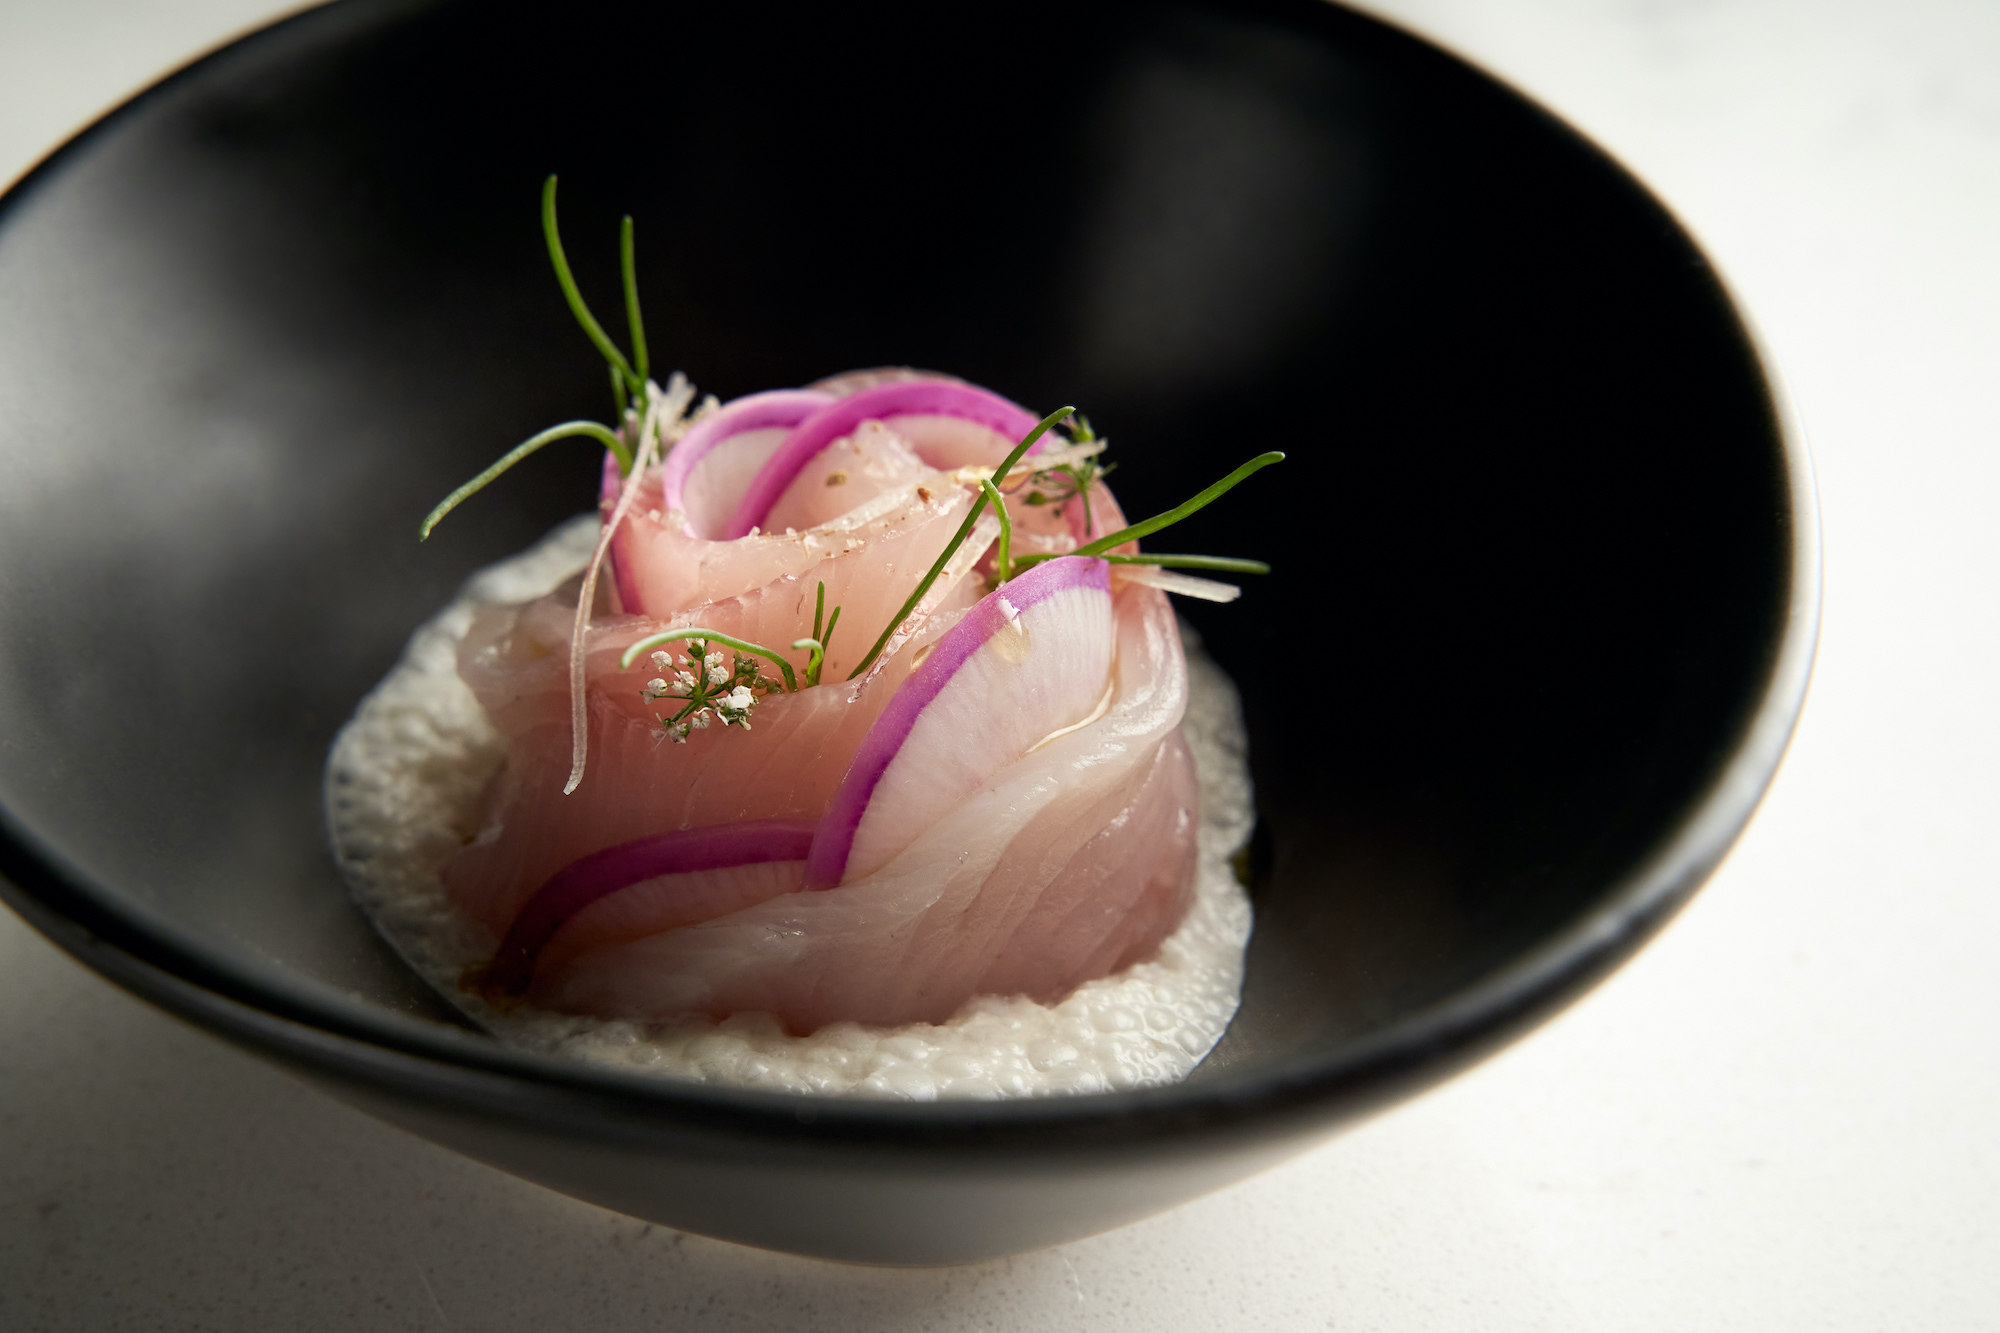 A tight coil of raw fish served as a crudo in a dark bowl.